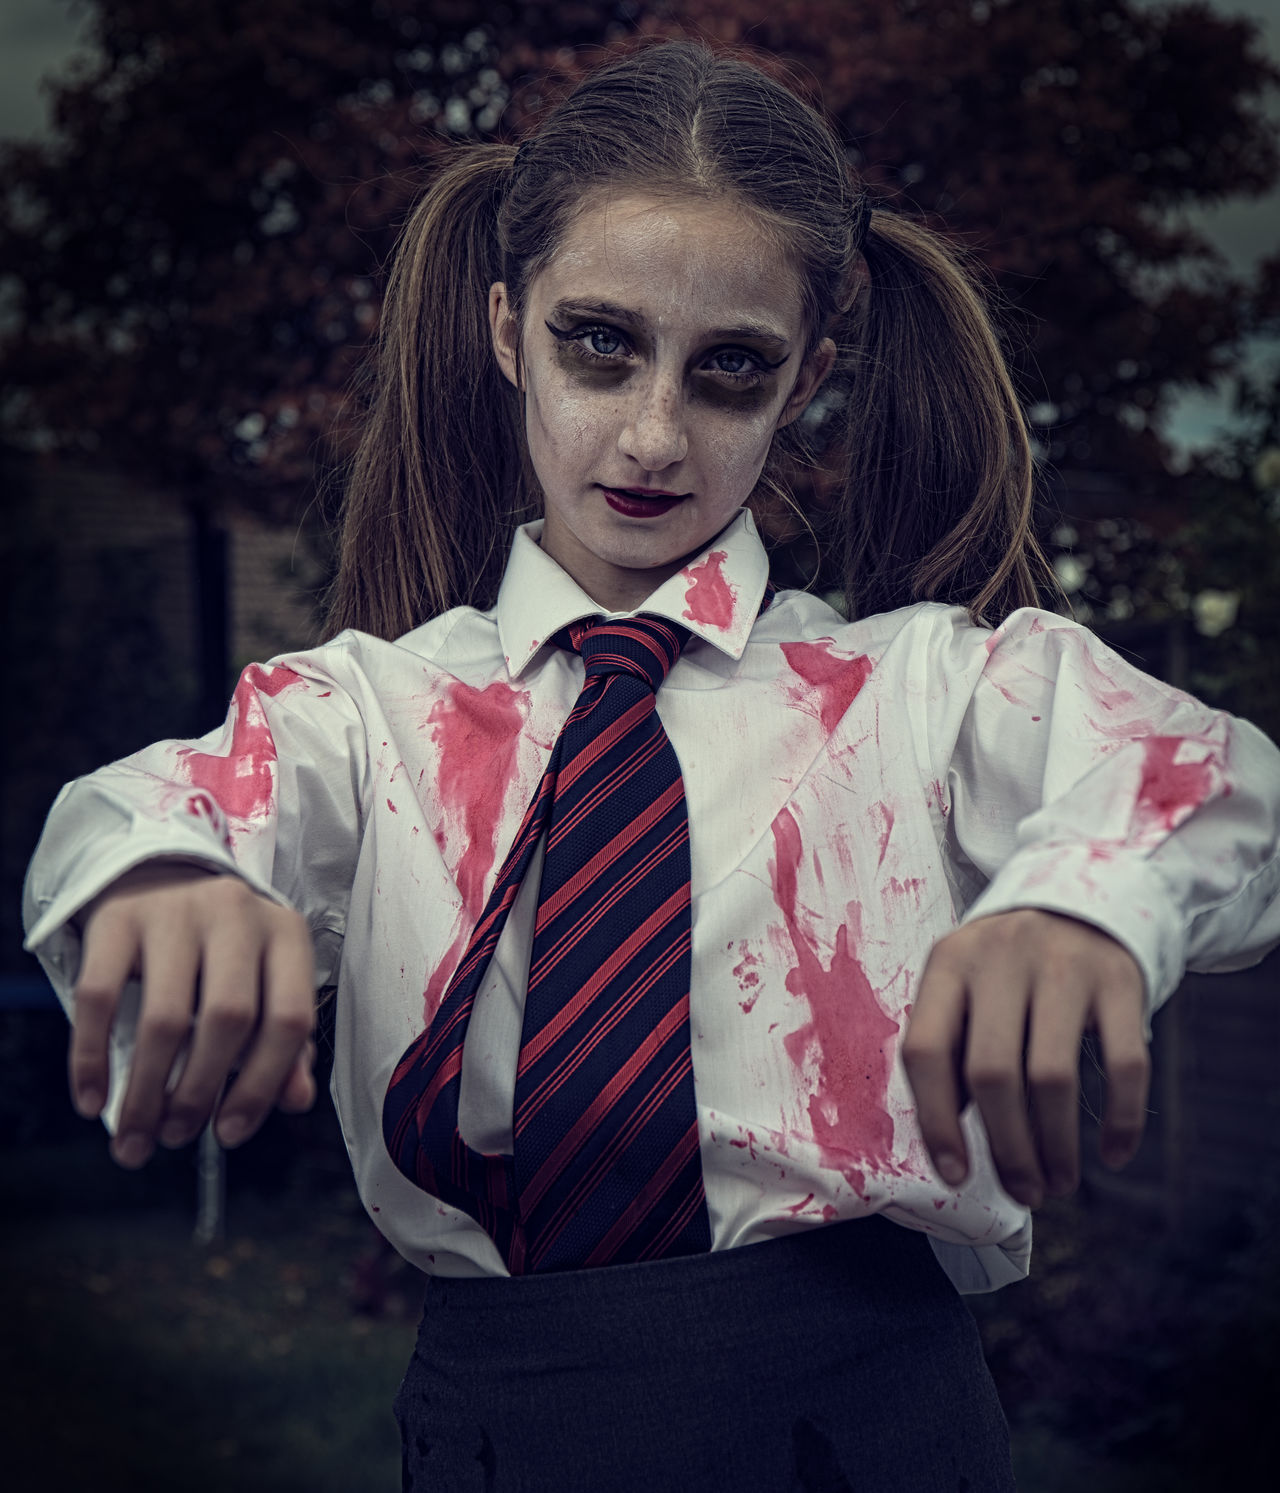 Canon Canon 5d Mark Iv Cloud-sky Facing The Camera Fancydress Focus On Foreground Front View Halloween Haloween Long Hair Outdoors Outdoors Photograpghy  Person Speedlight Strobe Youngnuoflash Zombie Zombiegirl